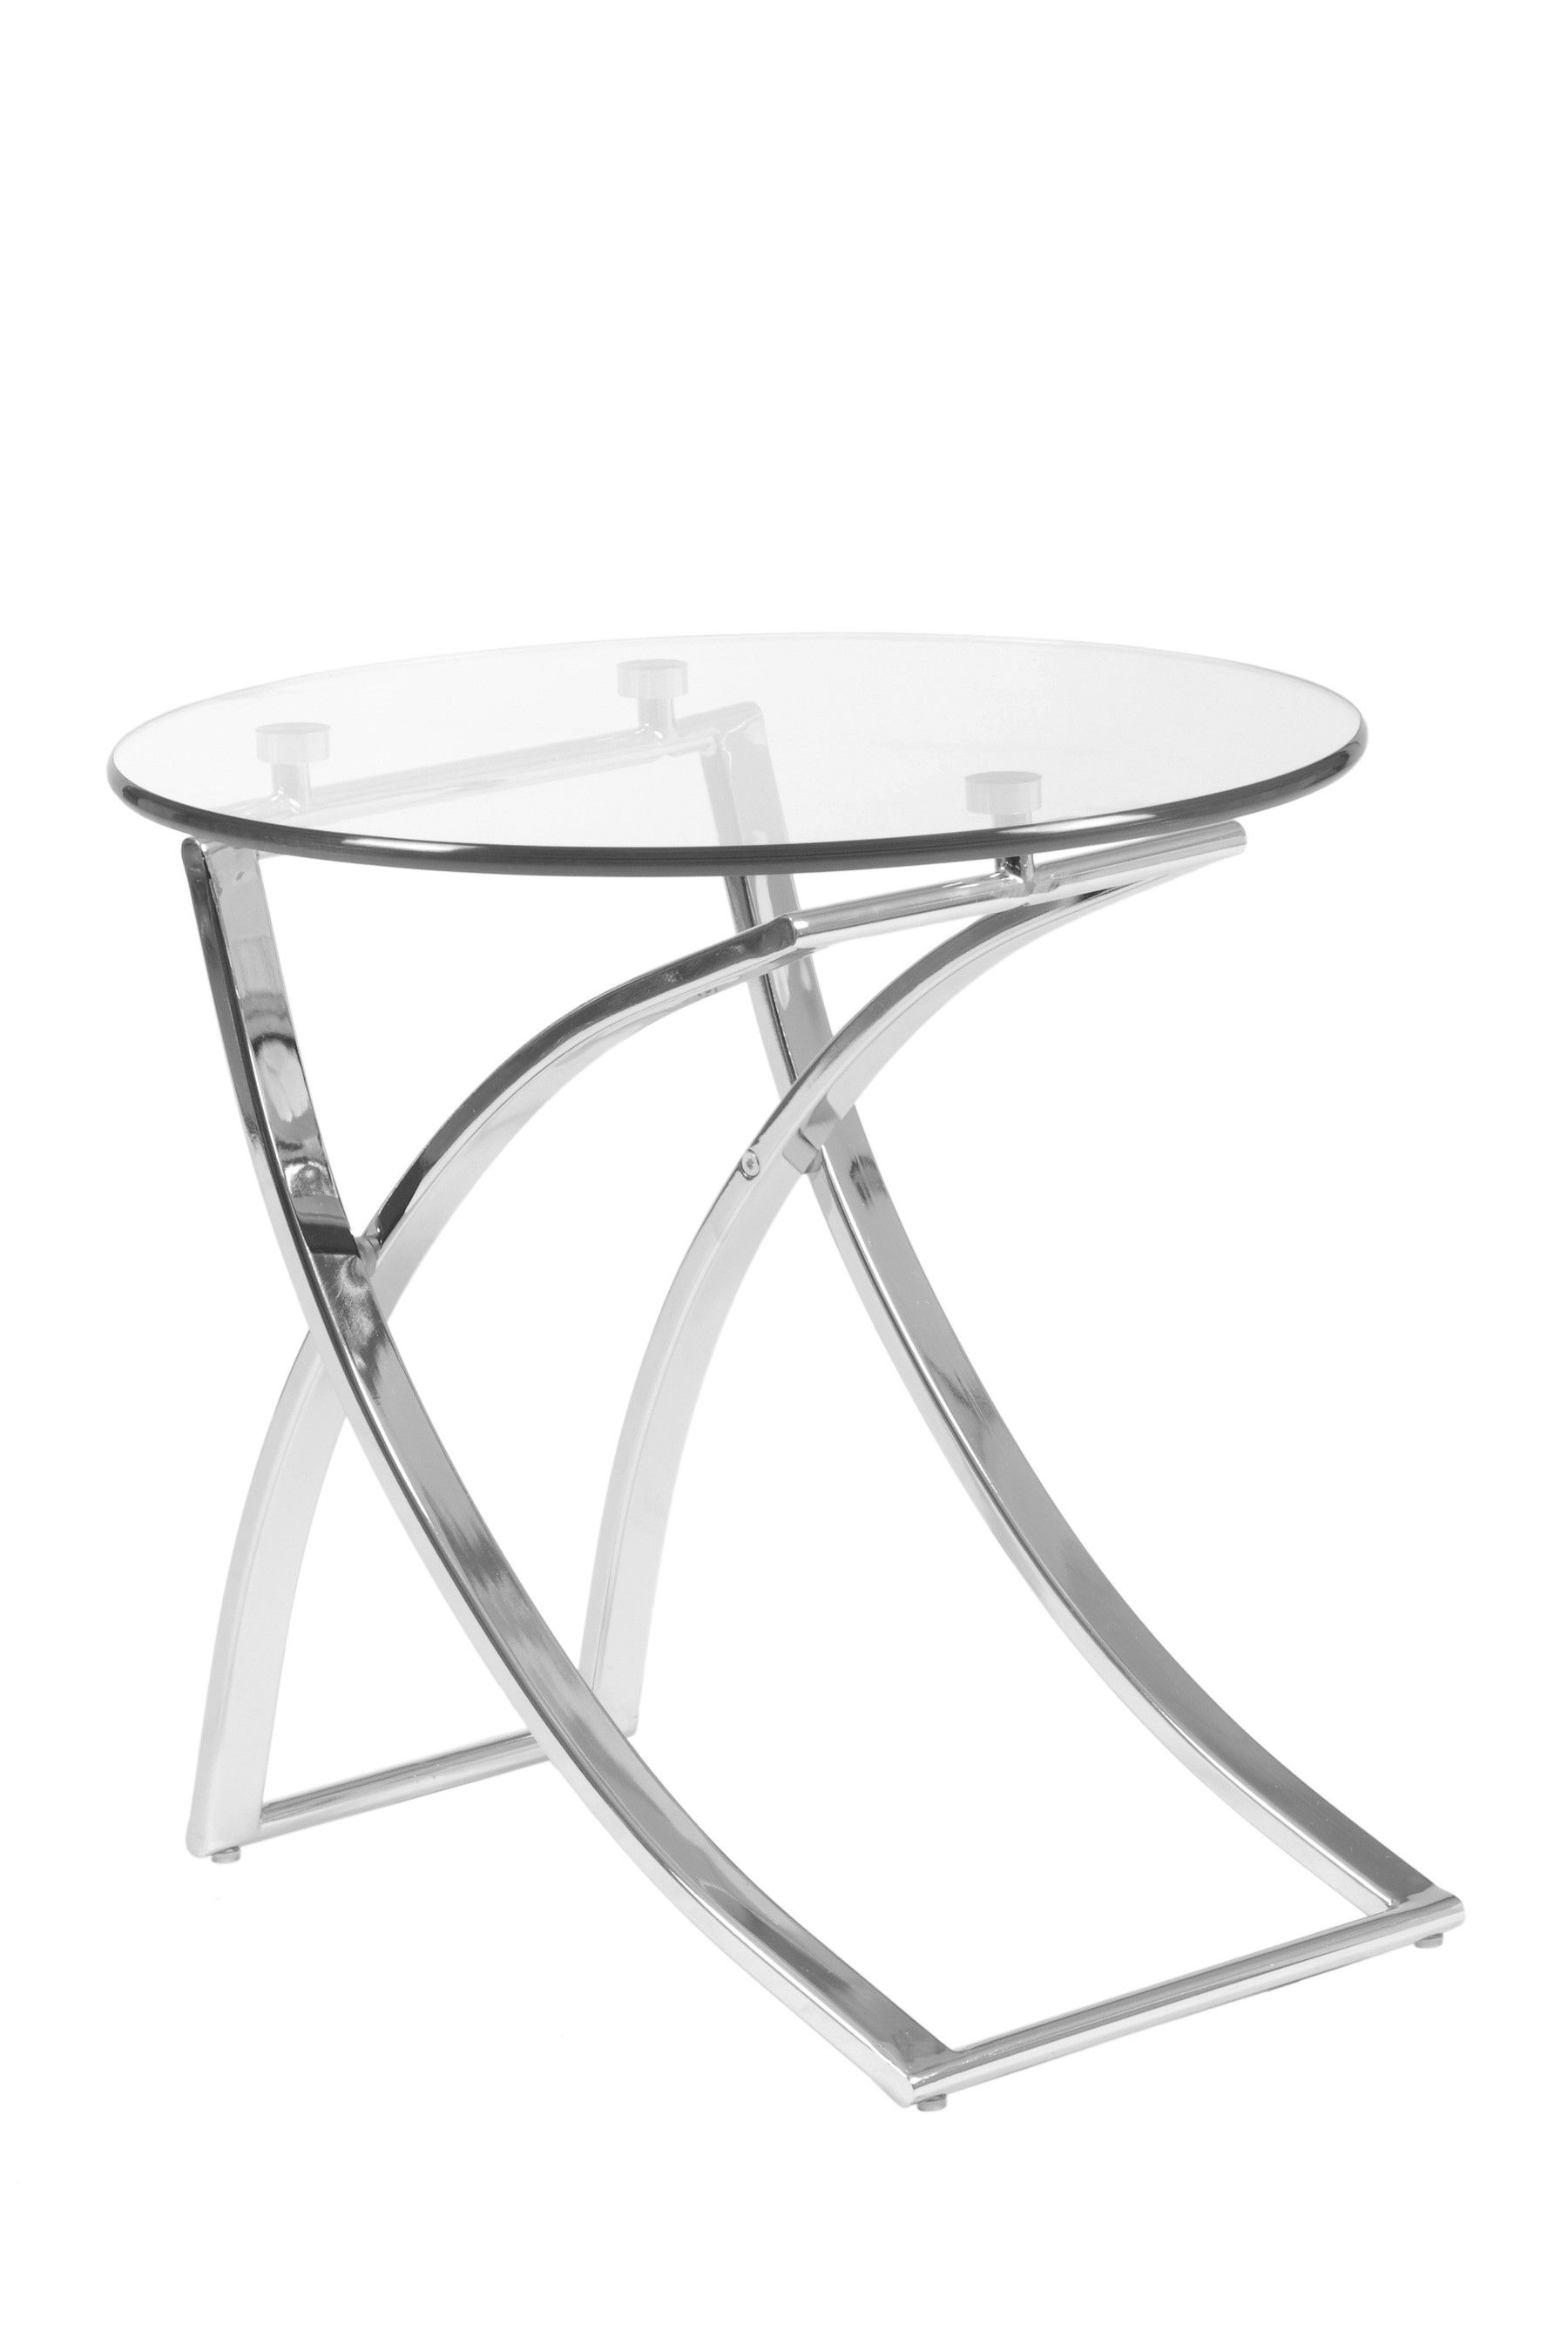 Talisa Side Table Clear Glass Chrome By Euro Style Side Table